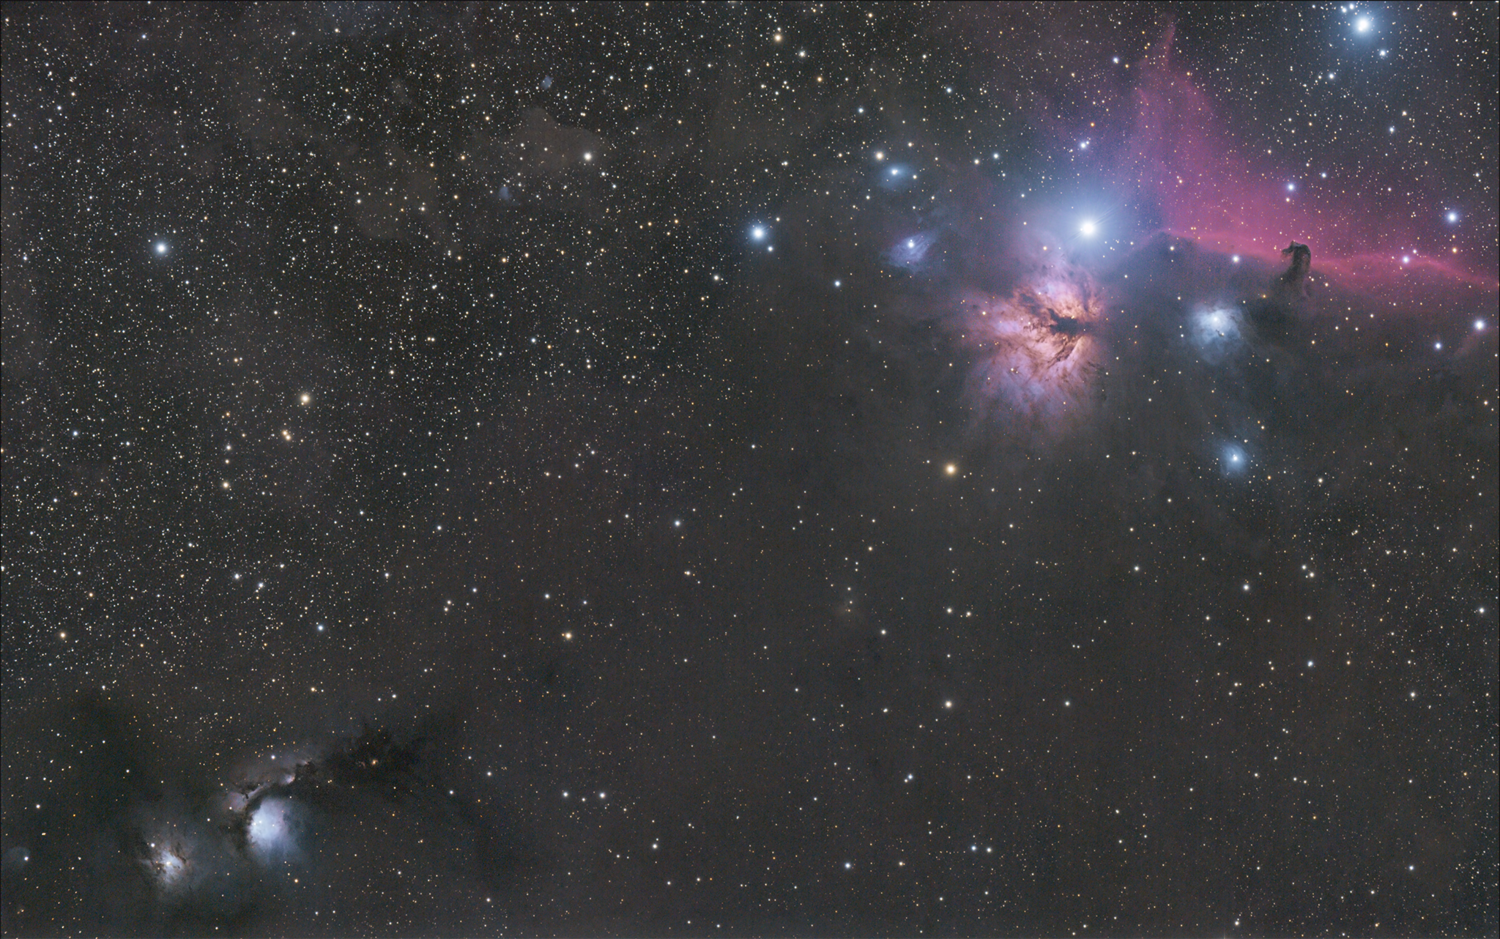 from Messier 78 to the Horse Head and the Flame by Robert Huerbsch